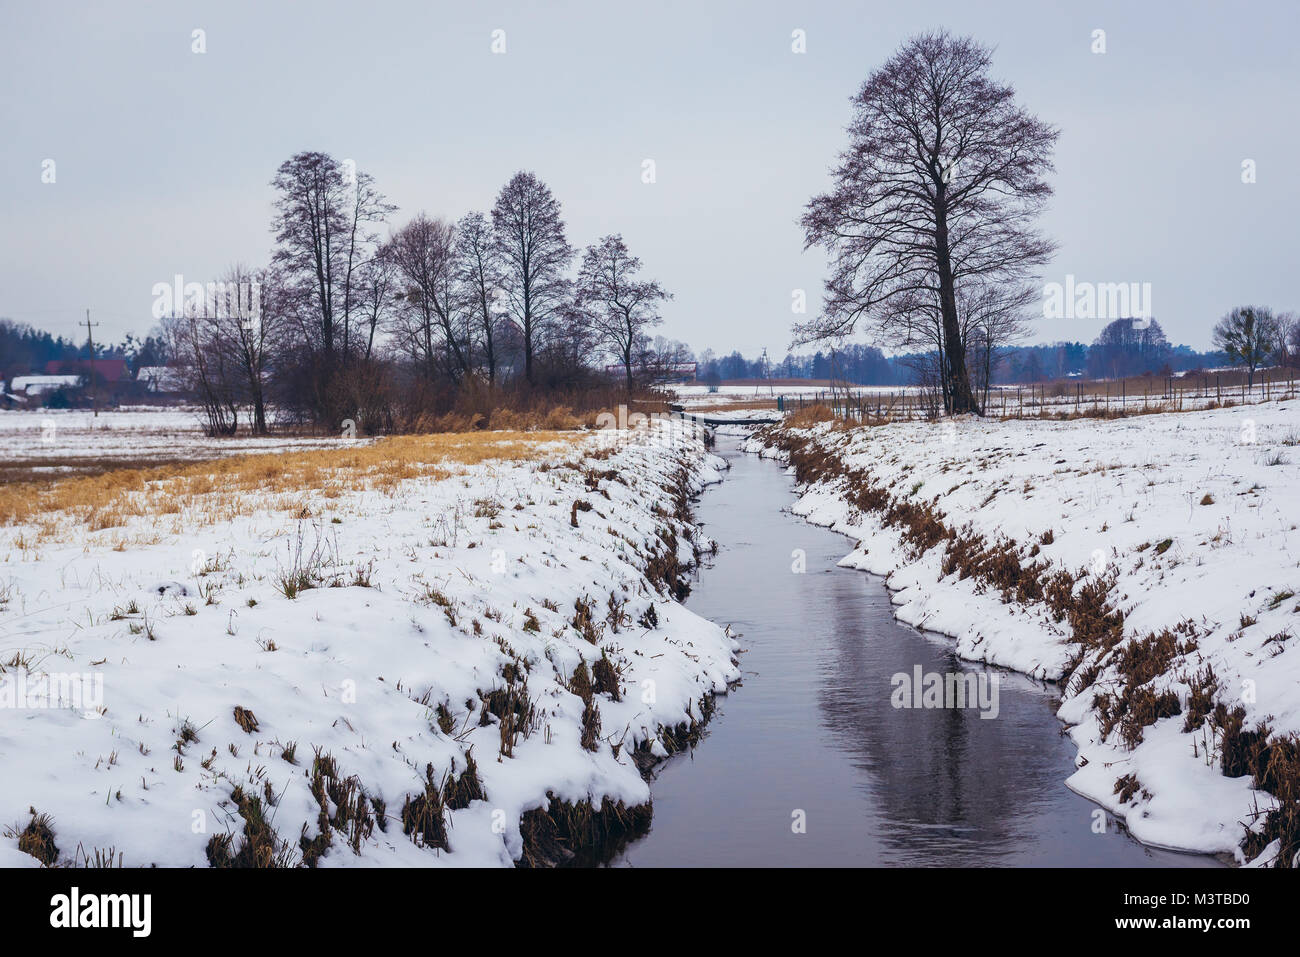 Rudnia river in Soce village on so called The Land of Open Shutters trail, famous for  traditional architecture - Stock Image